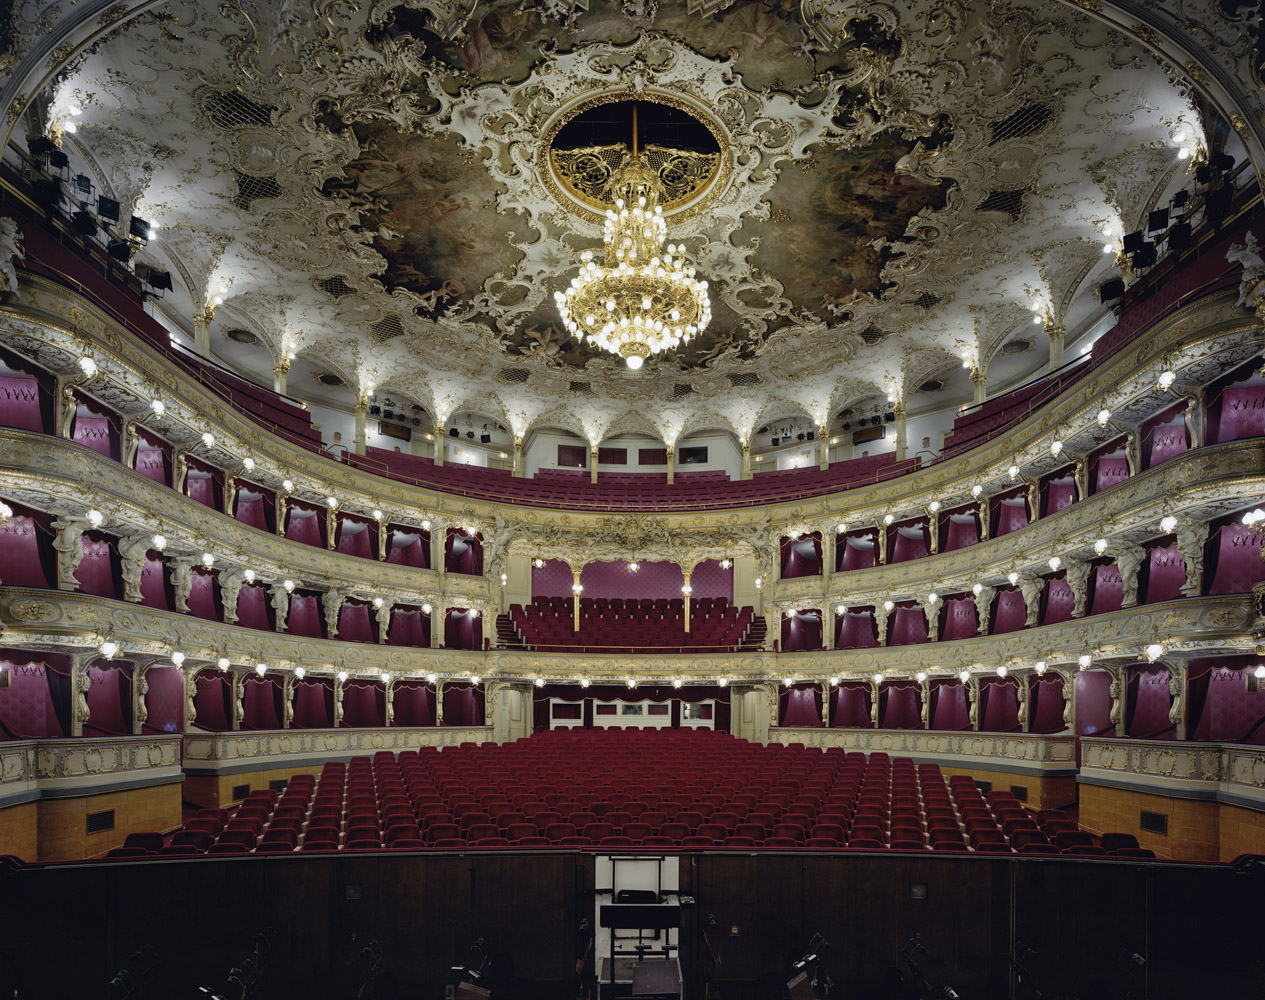 Státní Opera, Prague, Czech Republic, 2008, by David Leventi. Archive print on Dibond of the interior of  The State Opera house.